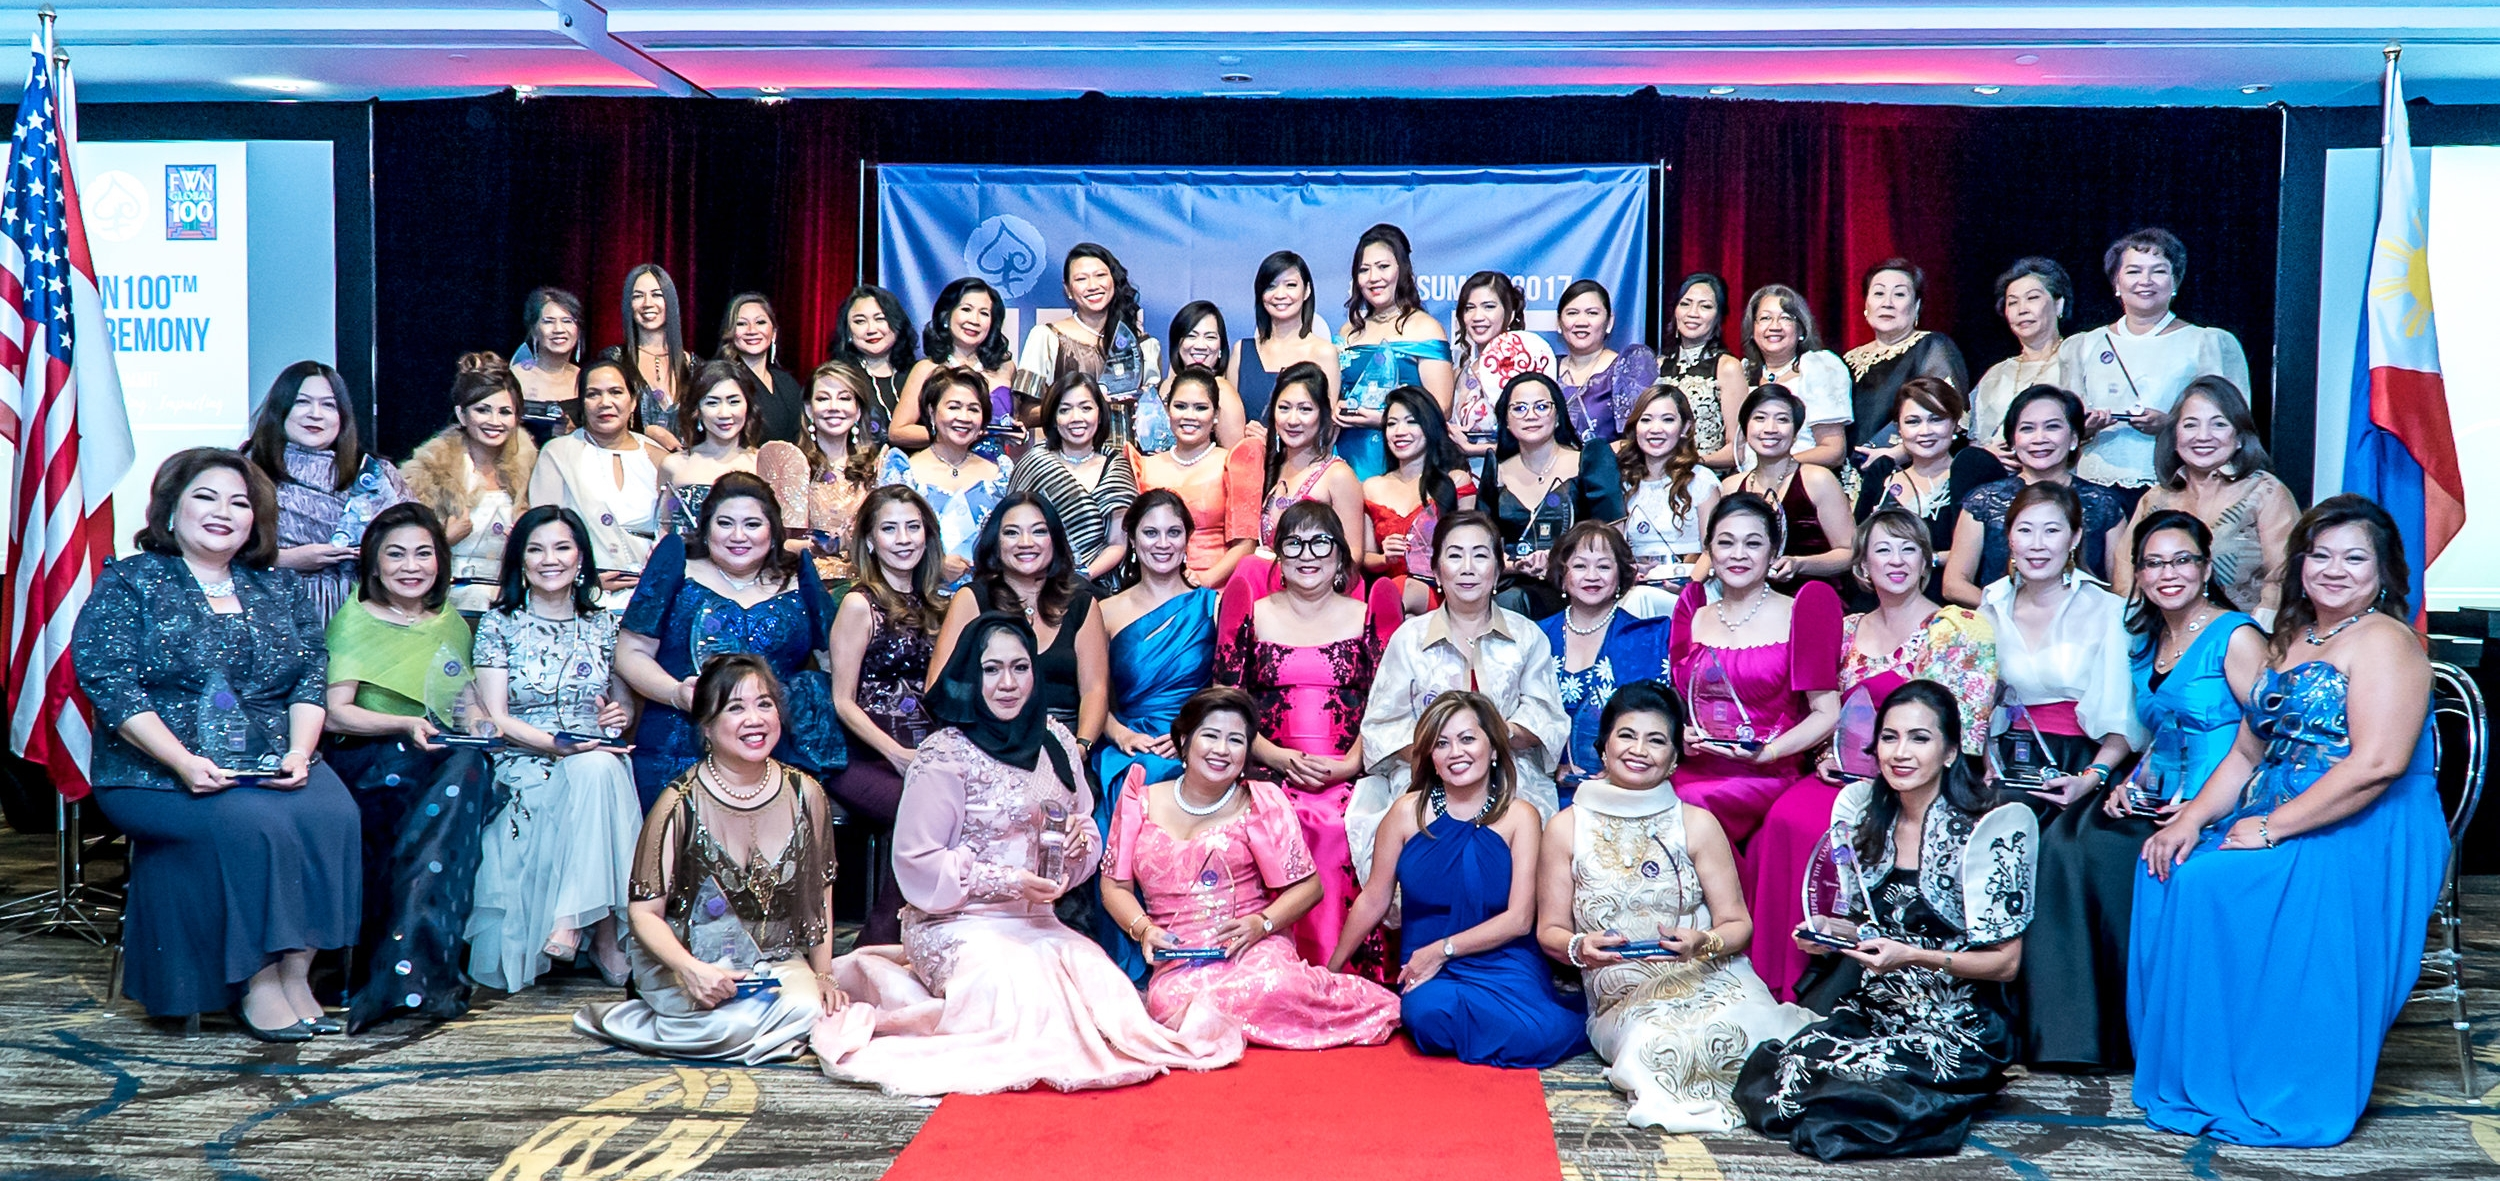 Global FWN100™ 2017 Awardees at the Intercontinental Toronto Centre, October 27, 2017